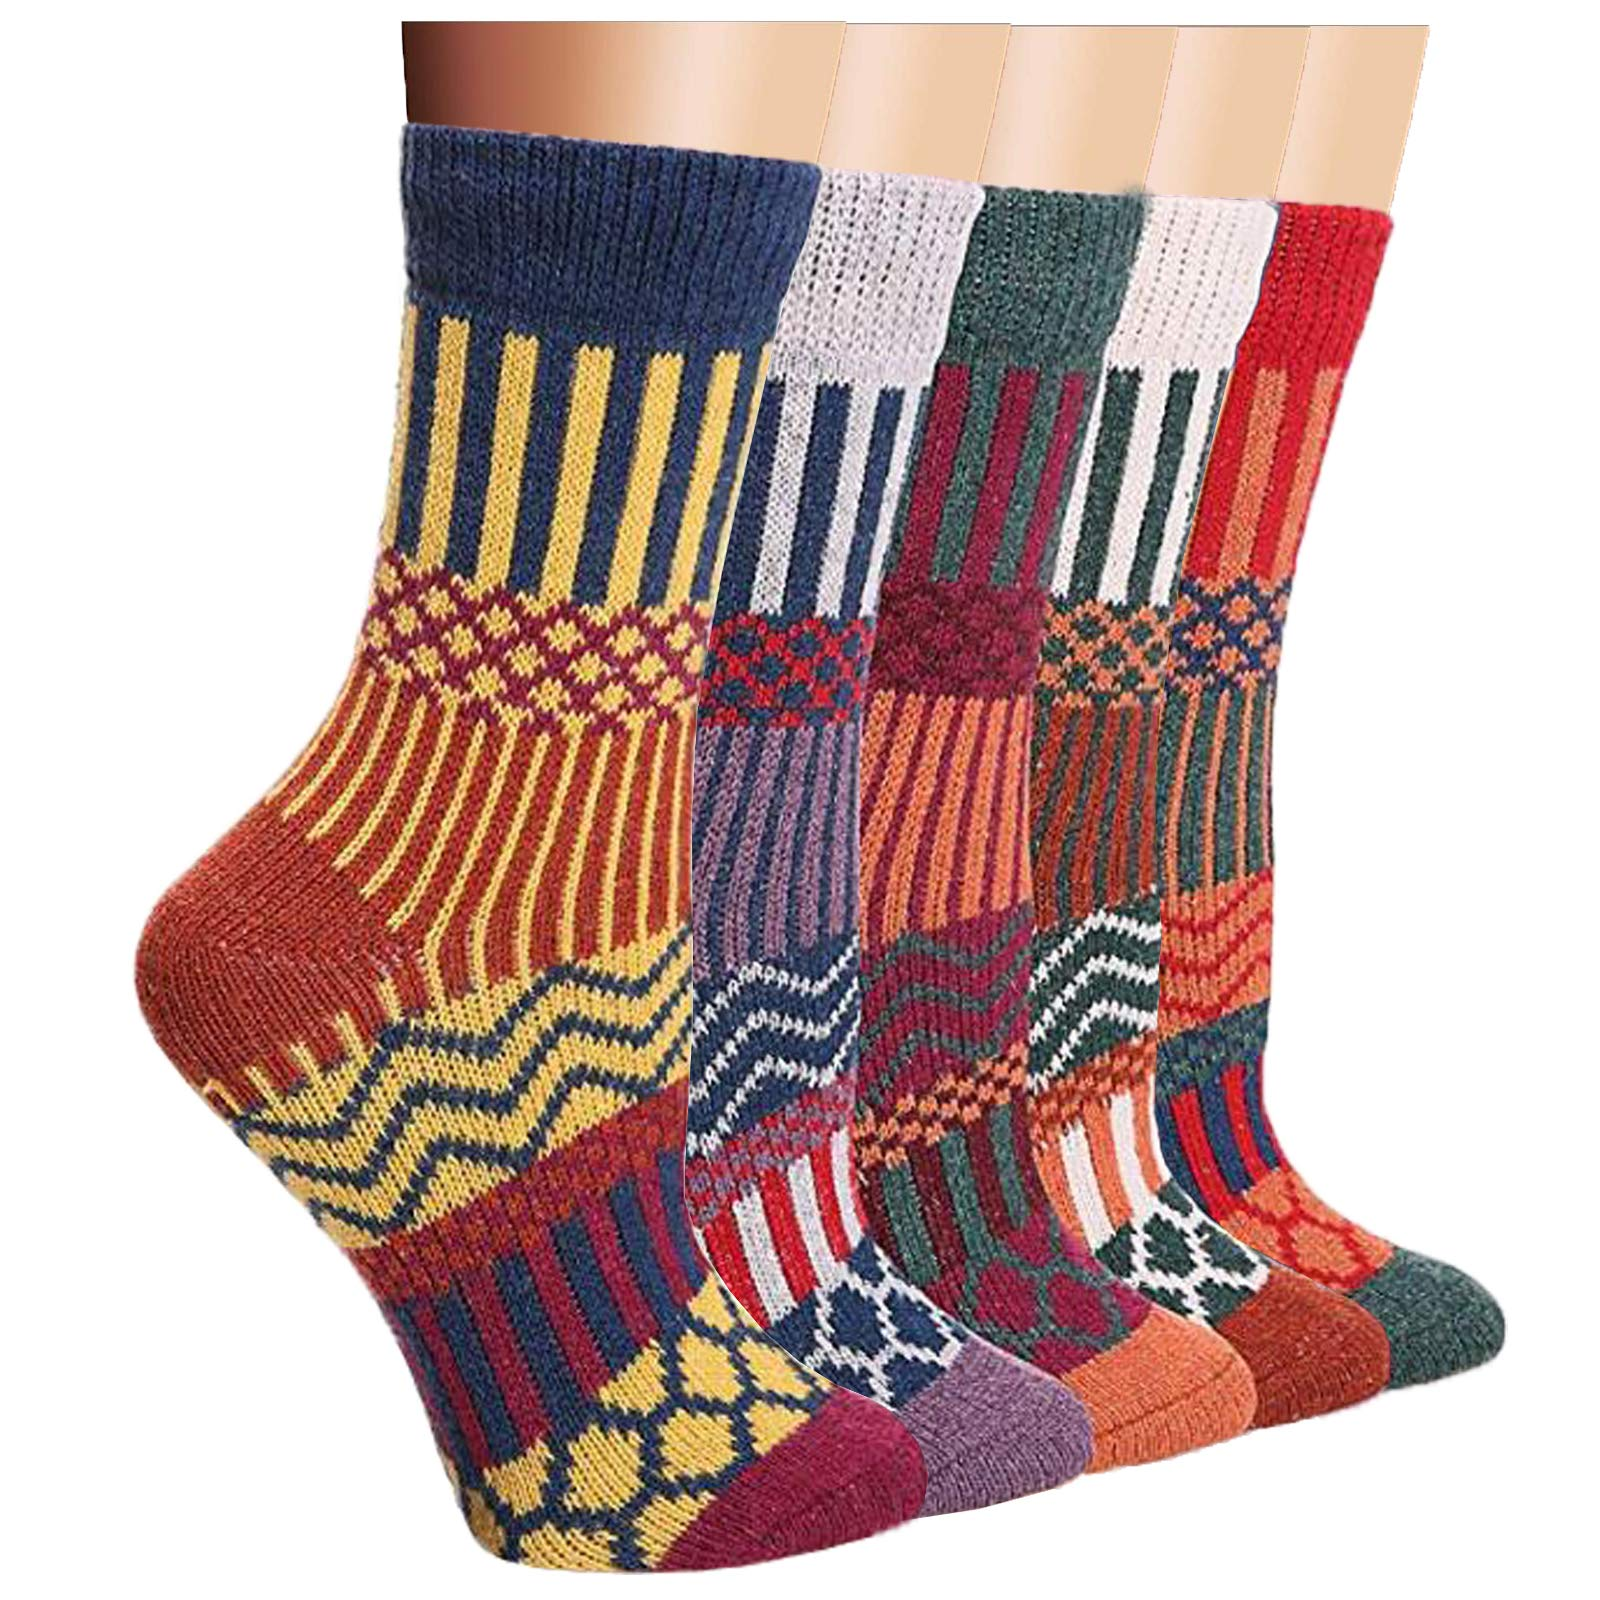 5 Pairs Womens Vintage Style Winter Warm Thick Knit Wool Novelty Soft Crew Socks